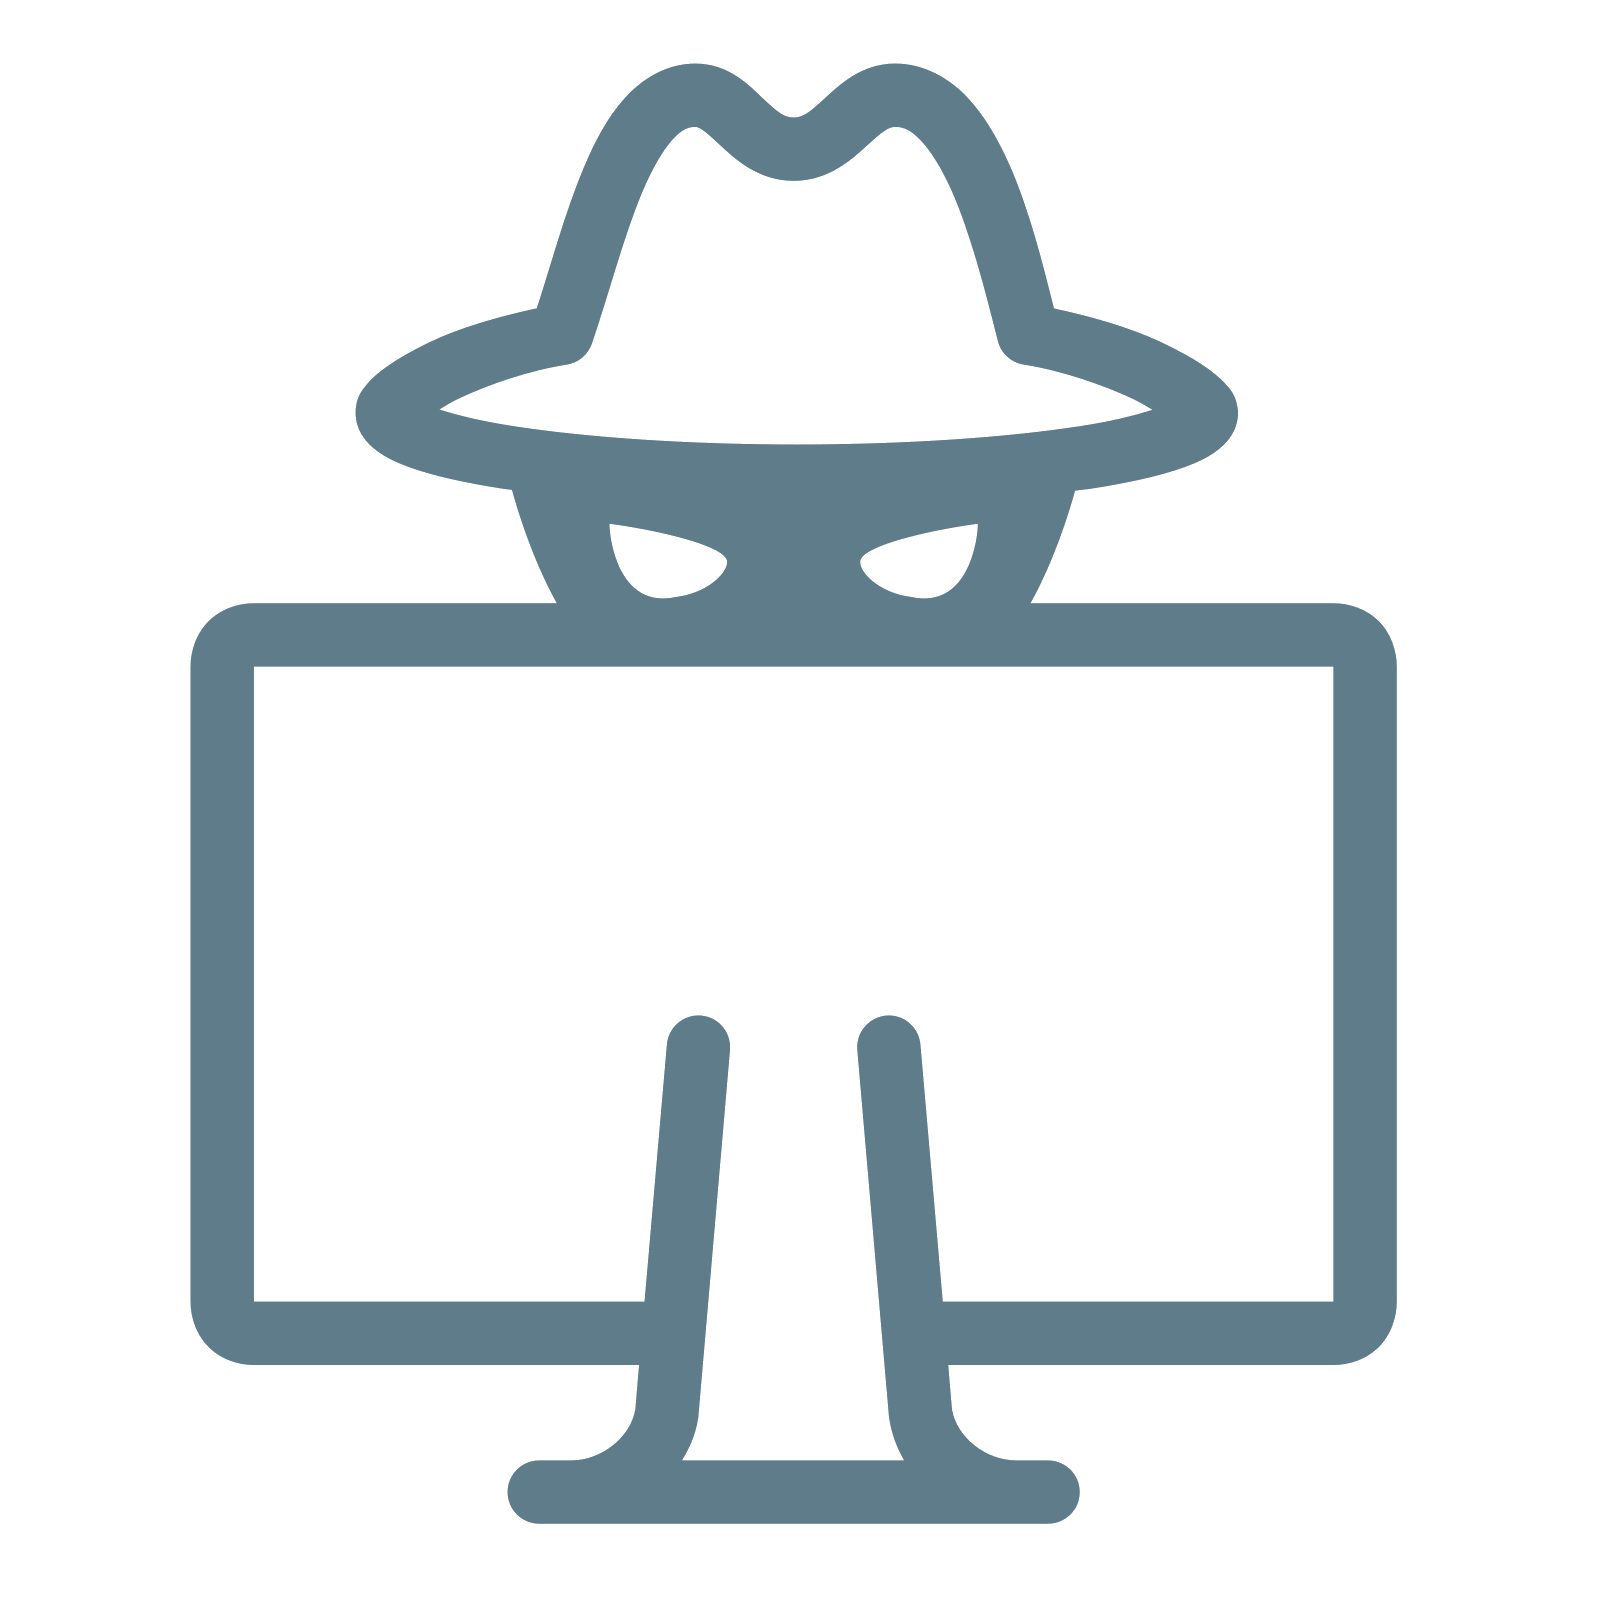 Hacker Security Computer Social Icons Free Clipart HD PNG Image